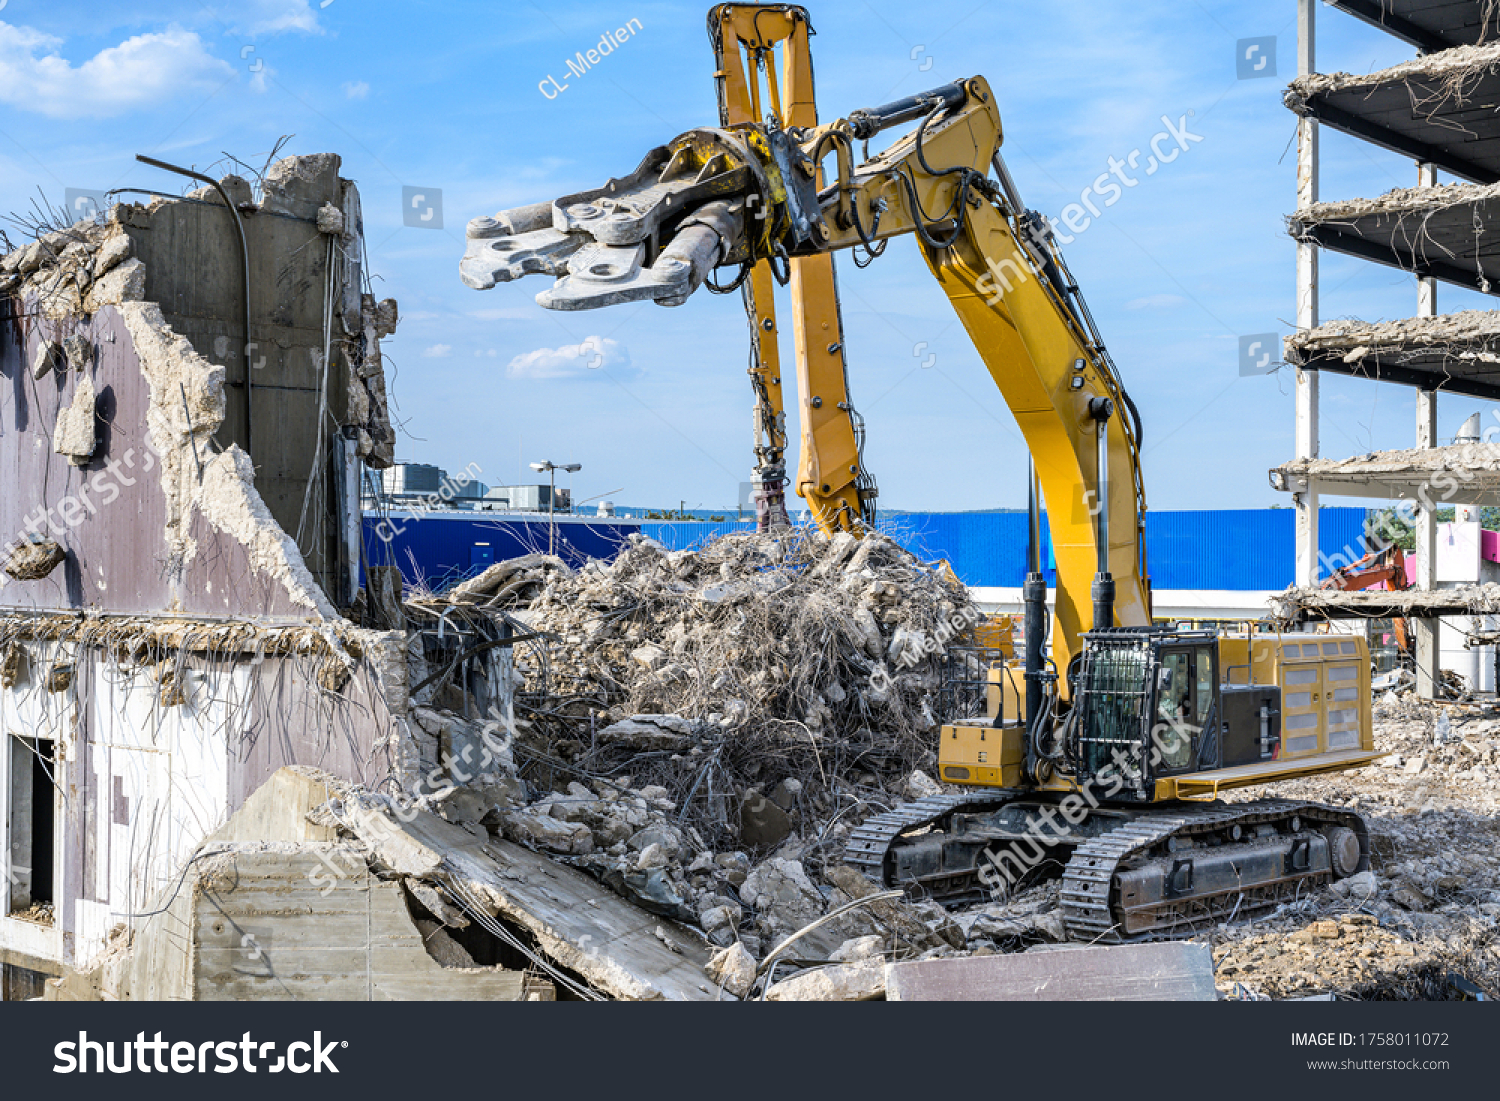 Building House destruction Demolition site Excavator with hydraulic crusher machine ruin house #1758011072